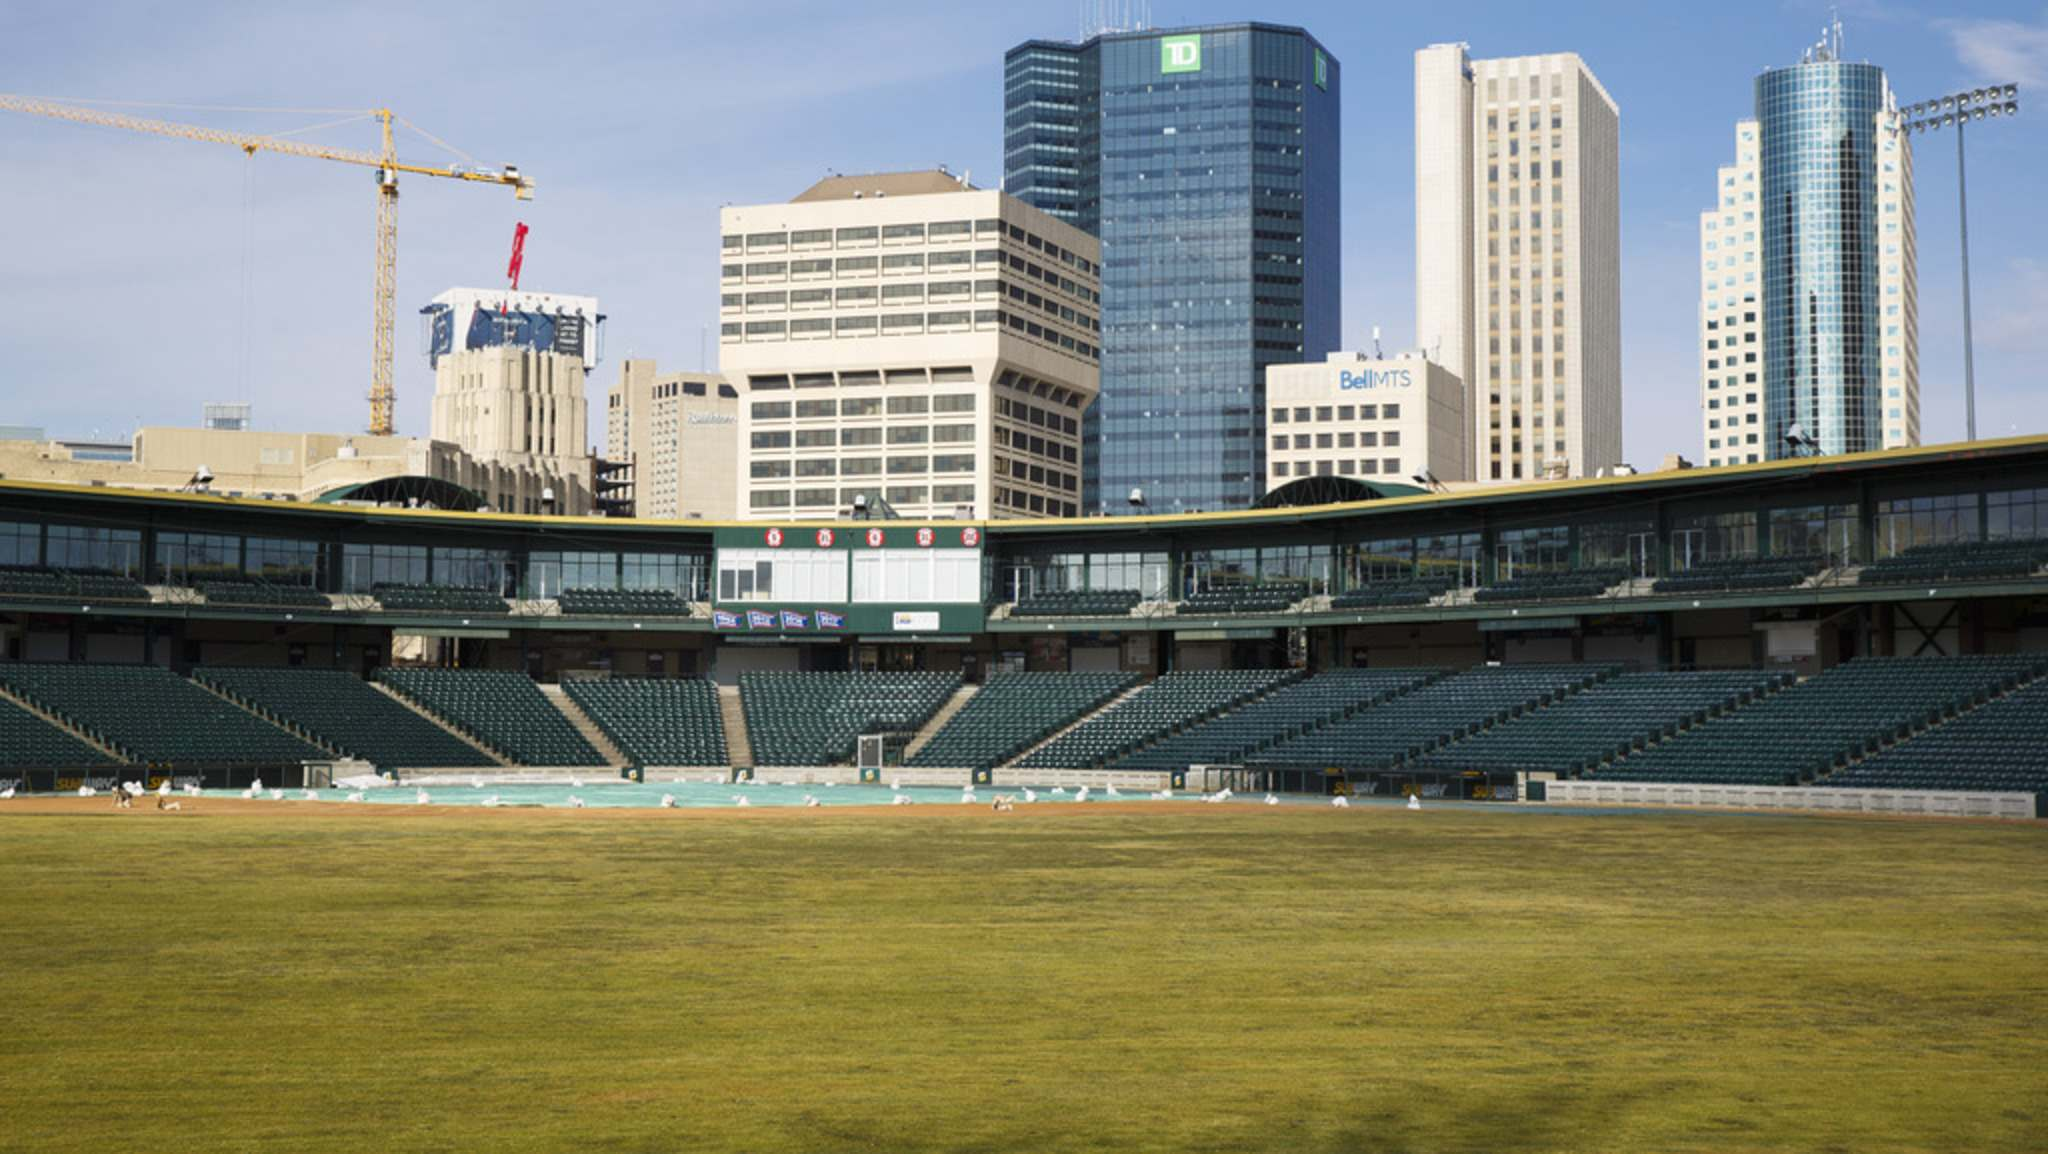 MIKE DEAL / WINNIPEG FREE PRESS FILES</p><p>On Monday, city council's property and development committee cast a tied 2-2 vote to seek financial statements from the Winnipeg Goldeyes before proceeding with a new 15-year lease agreement for Shaw Park, home of the independent league baseball team.</p>